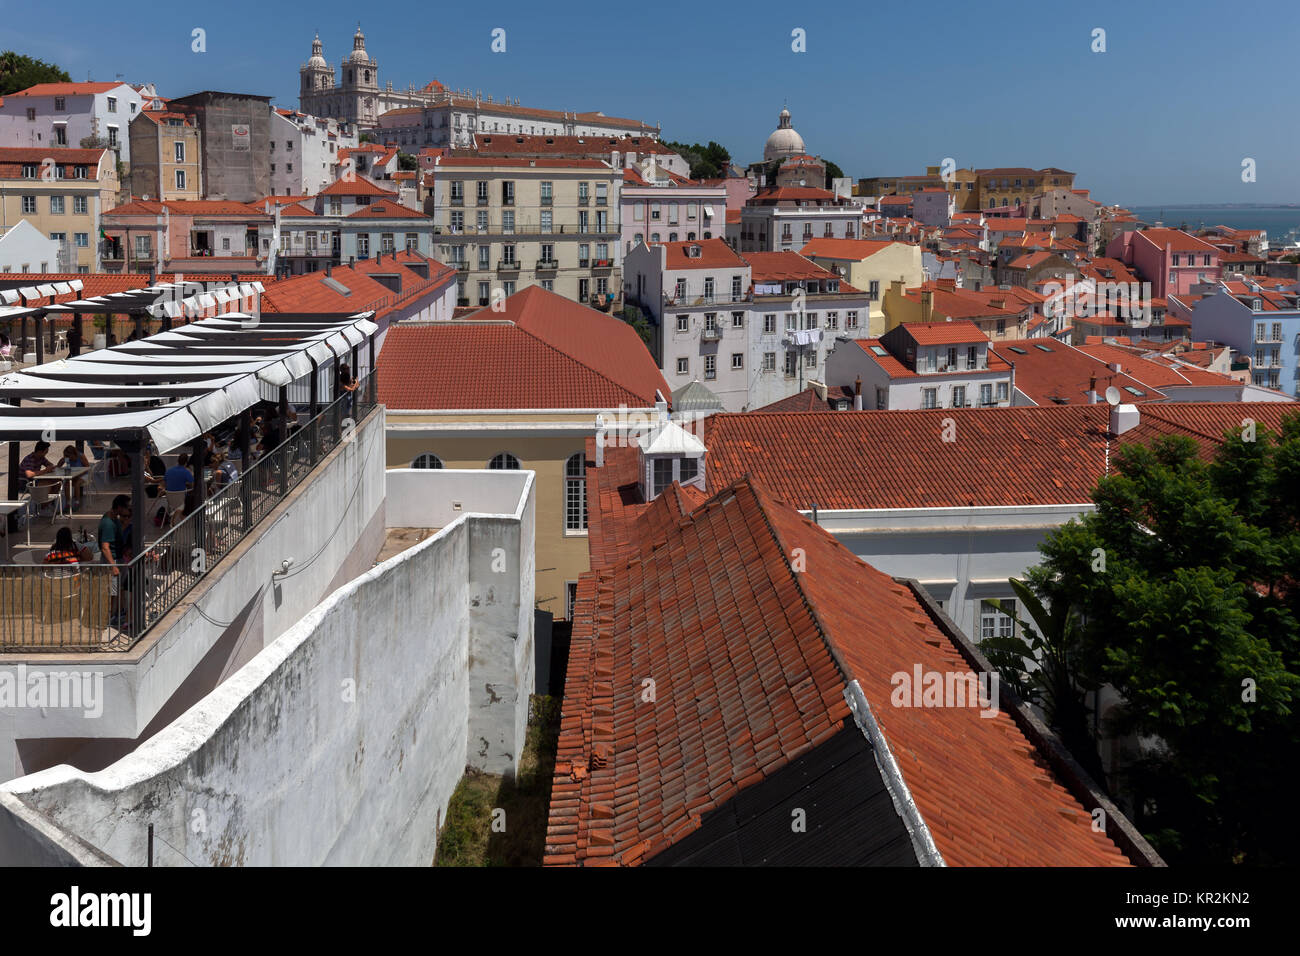 View of Lisbon, Portugal - Stock Image